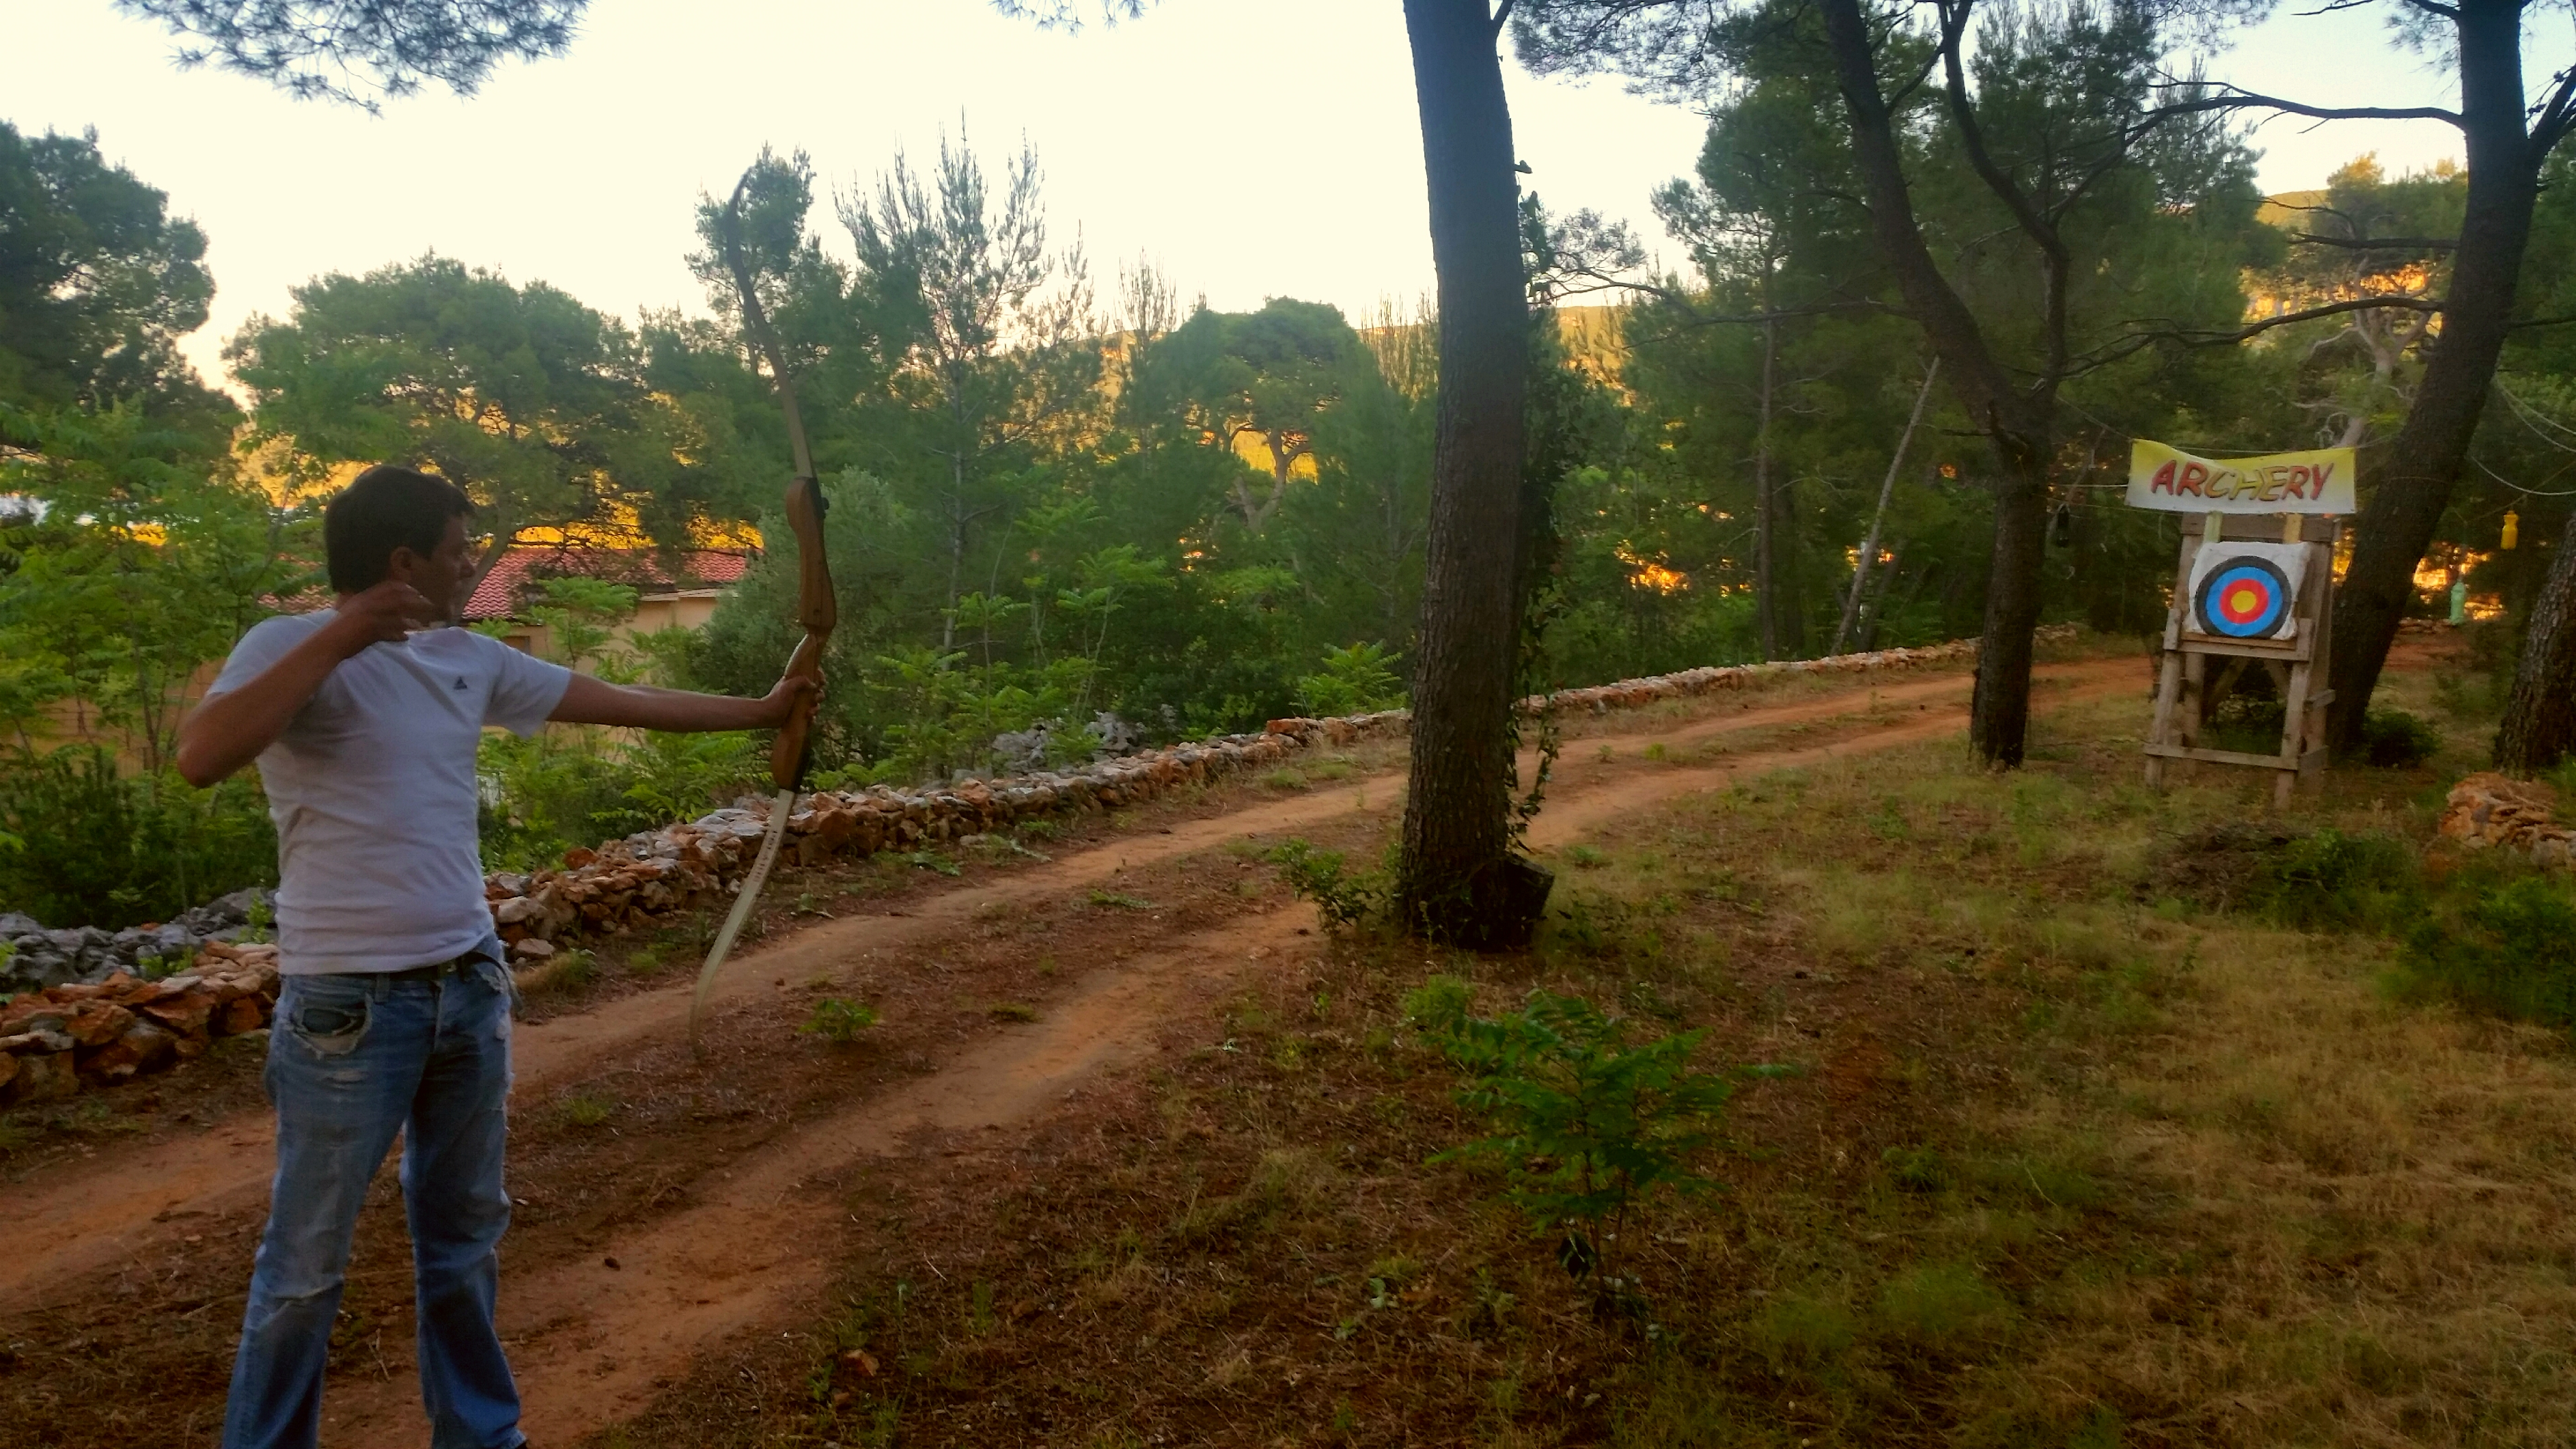 Archery adventure park Hvar Jelsa